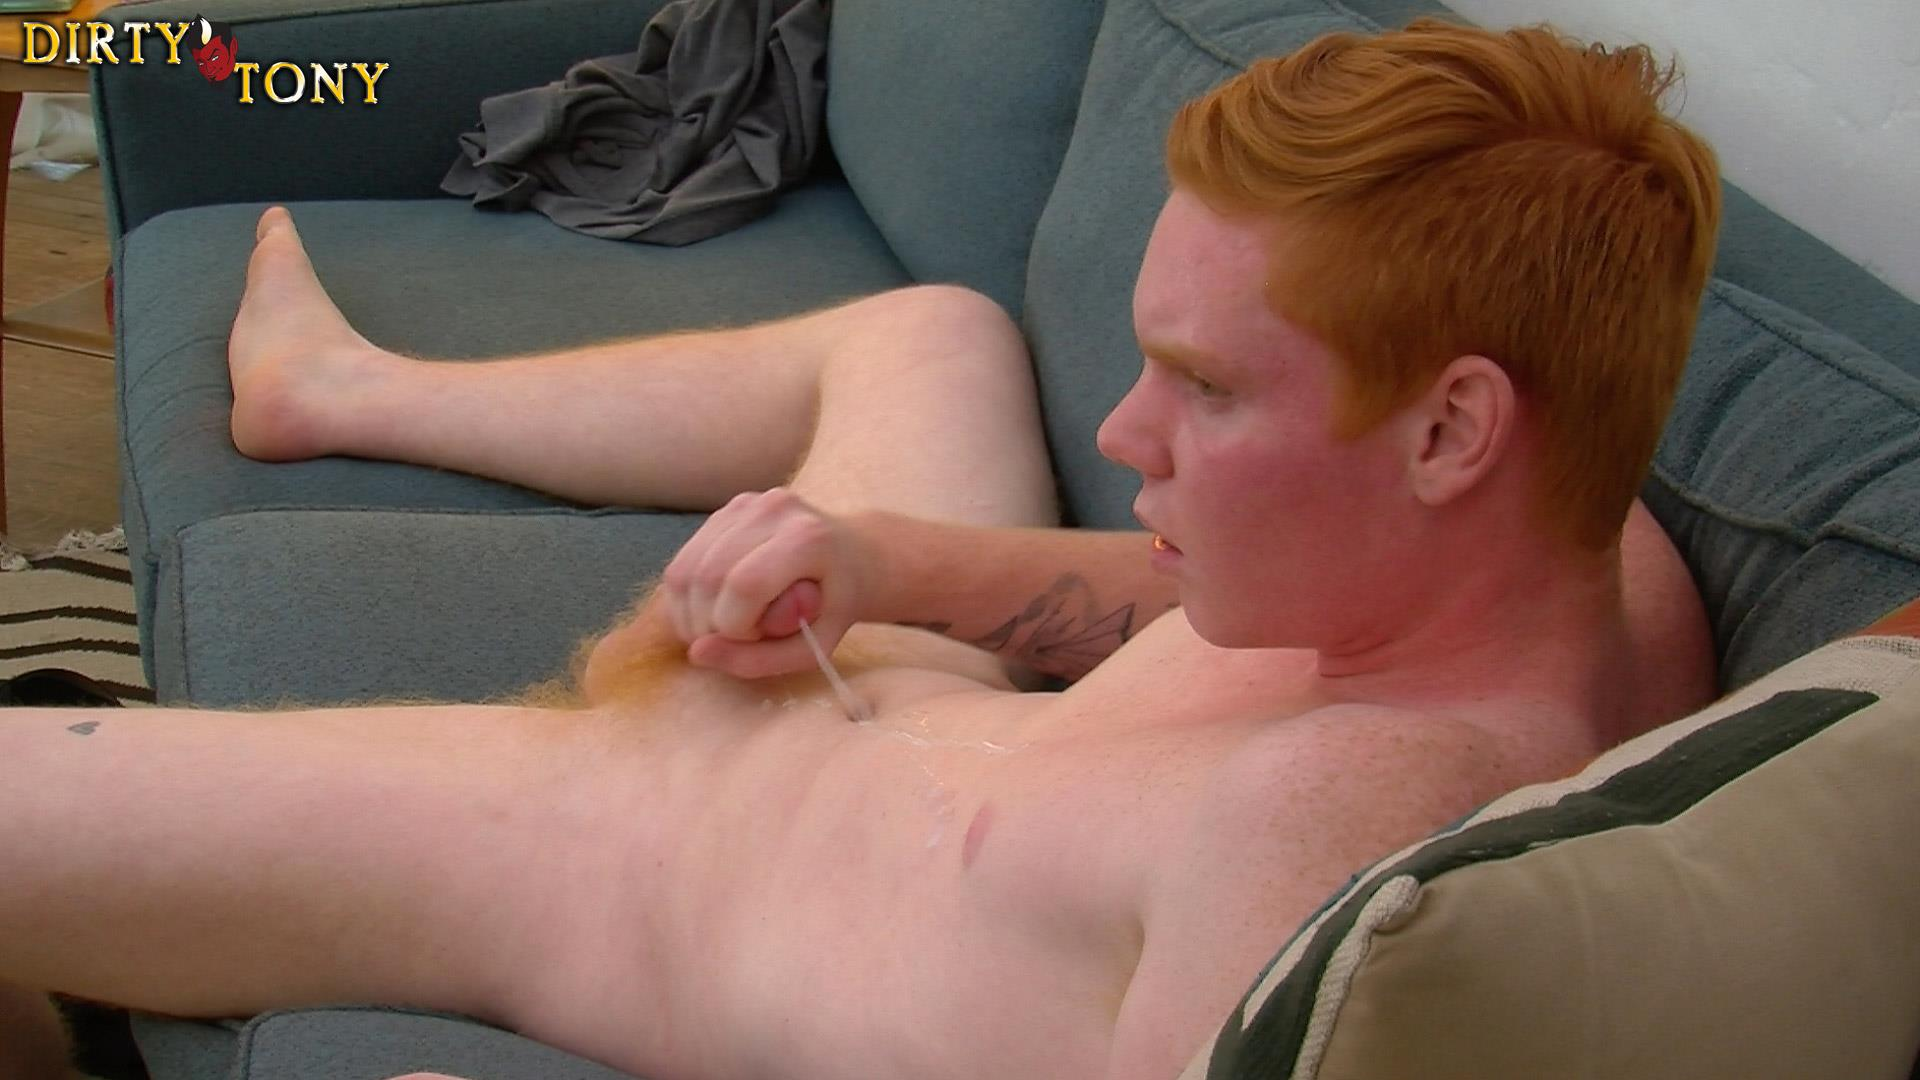 Dirty Tony Max Breeker Redheaded Twink Masturbation Amateur Gay Porn 14 Bisexual 19 Year Old Redheaded Twink Auditions For Gay Porn